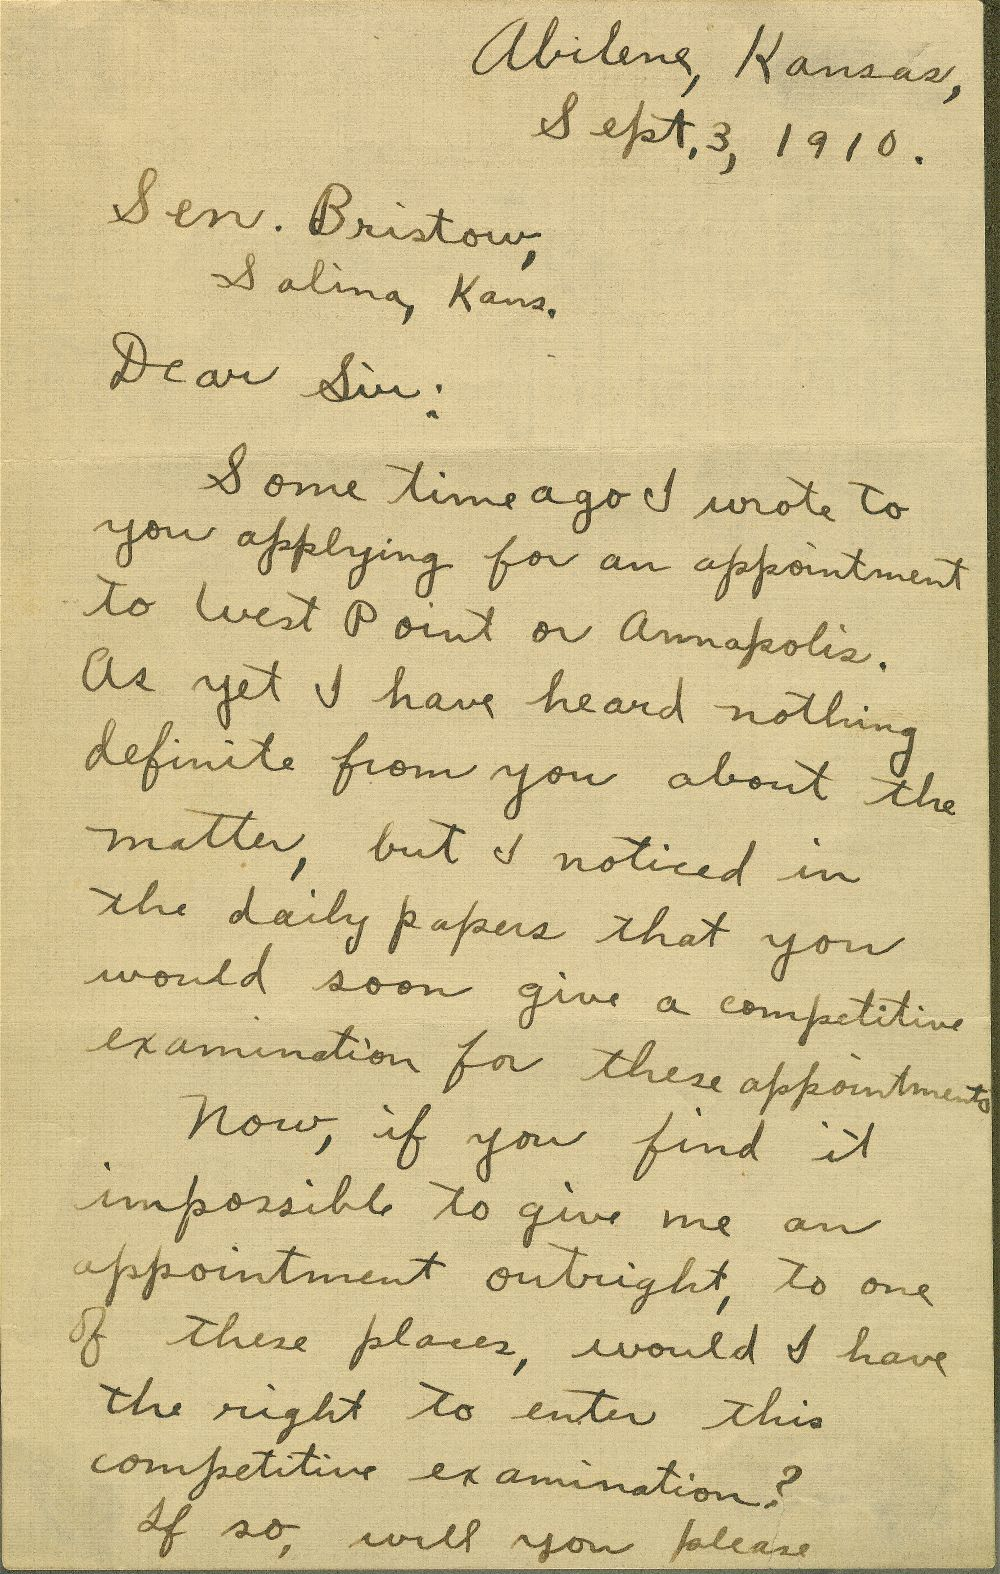 Correspondence between Dwight David Eisenhower and U.S. Senator Joseph L. Bristow concerning Eisenhower's appointment to a military academy - all